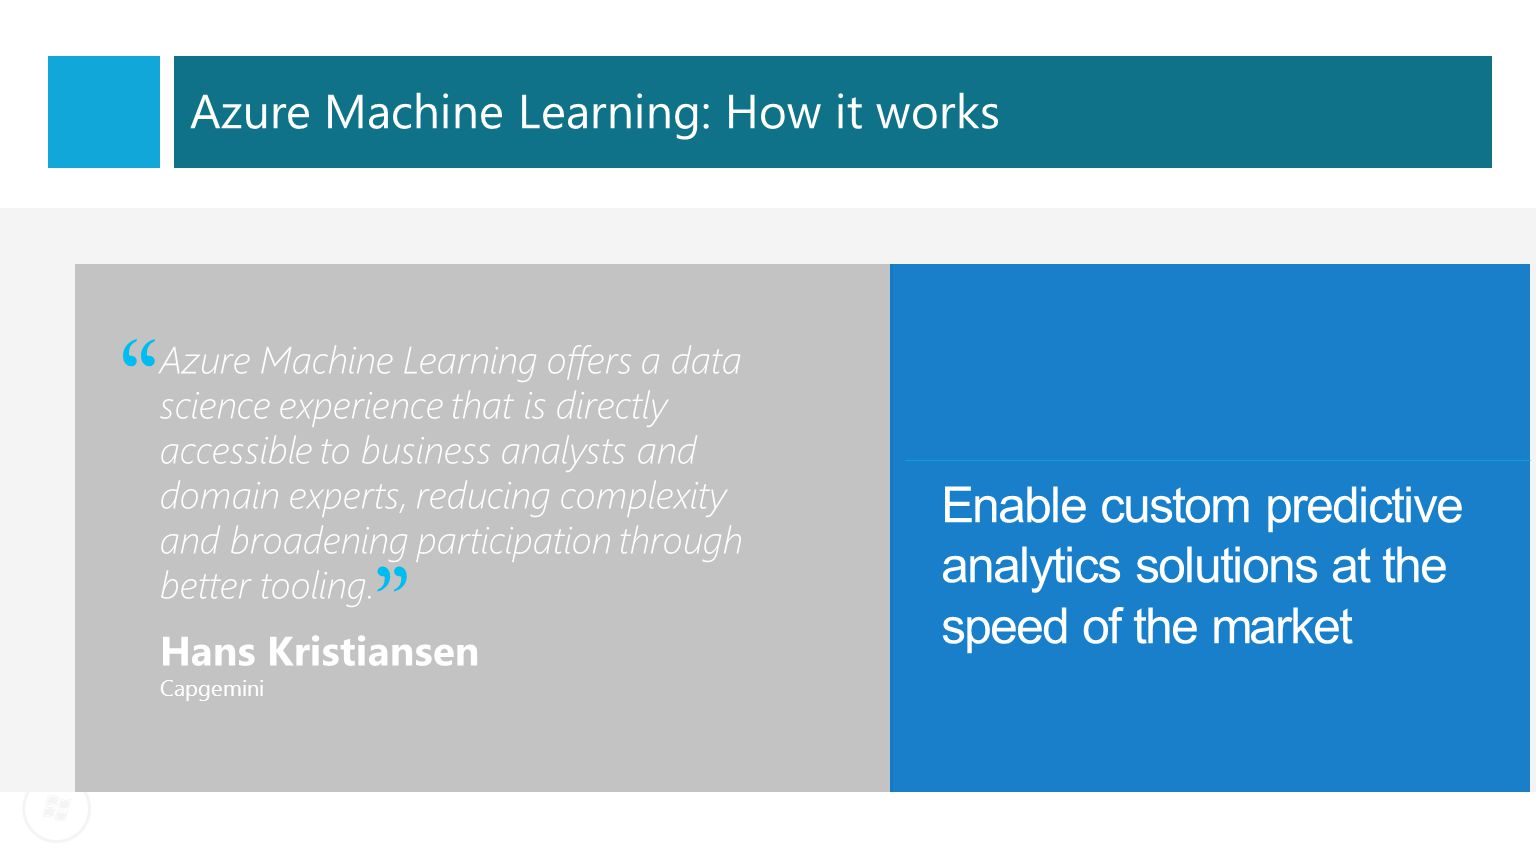 Azure Machine Learning: How it works